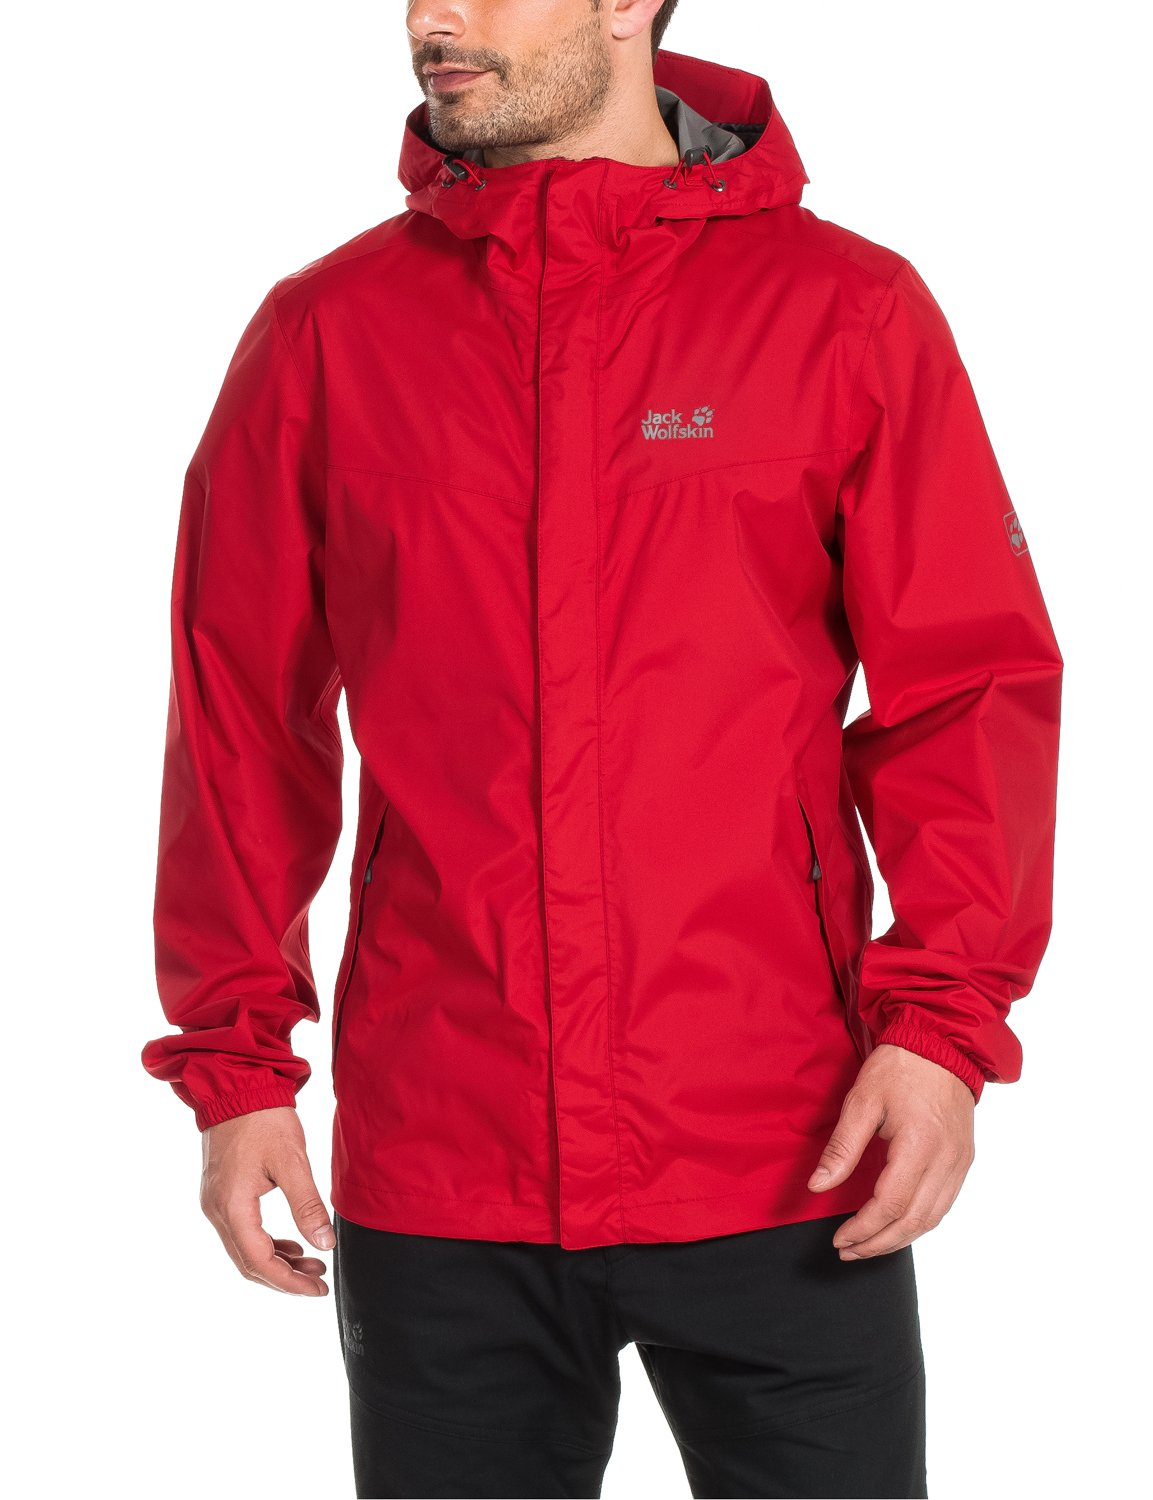 Jack Wolfskin CLOUDBURST JACKET MEN red fire by Jack Wolfskin